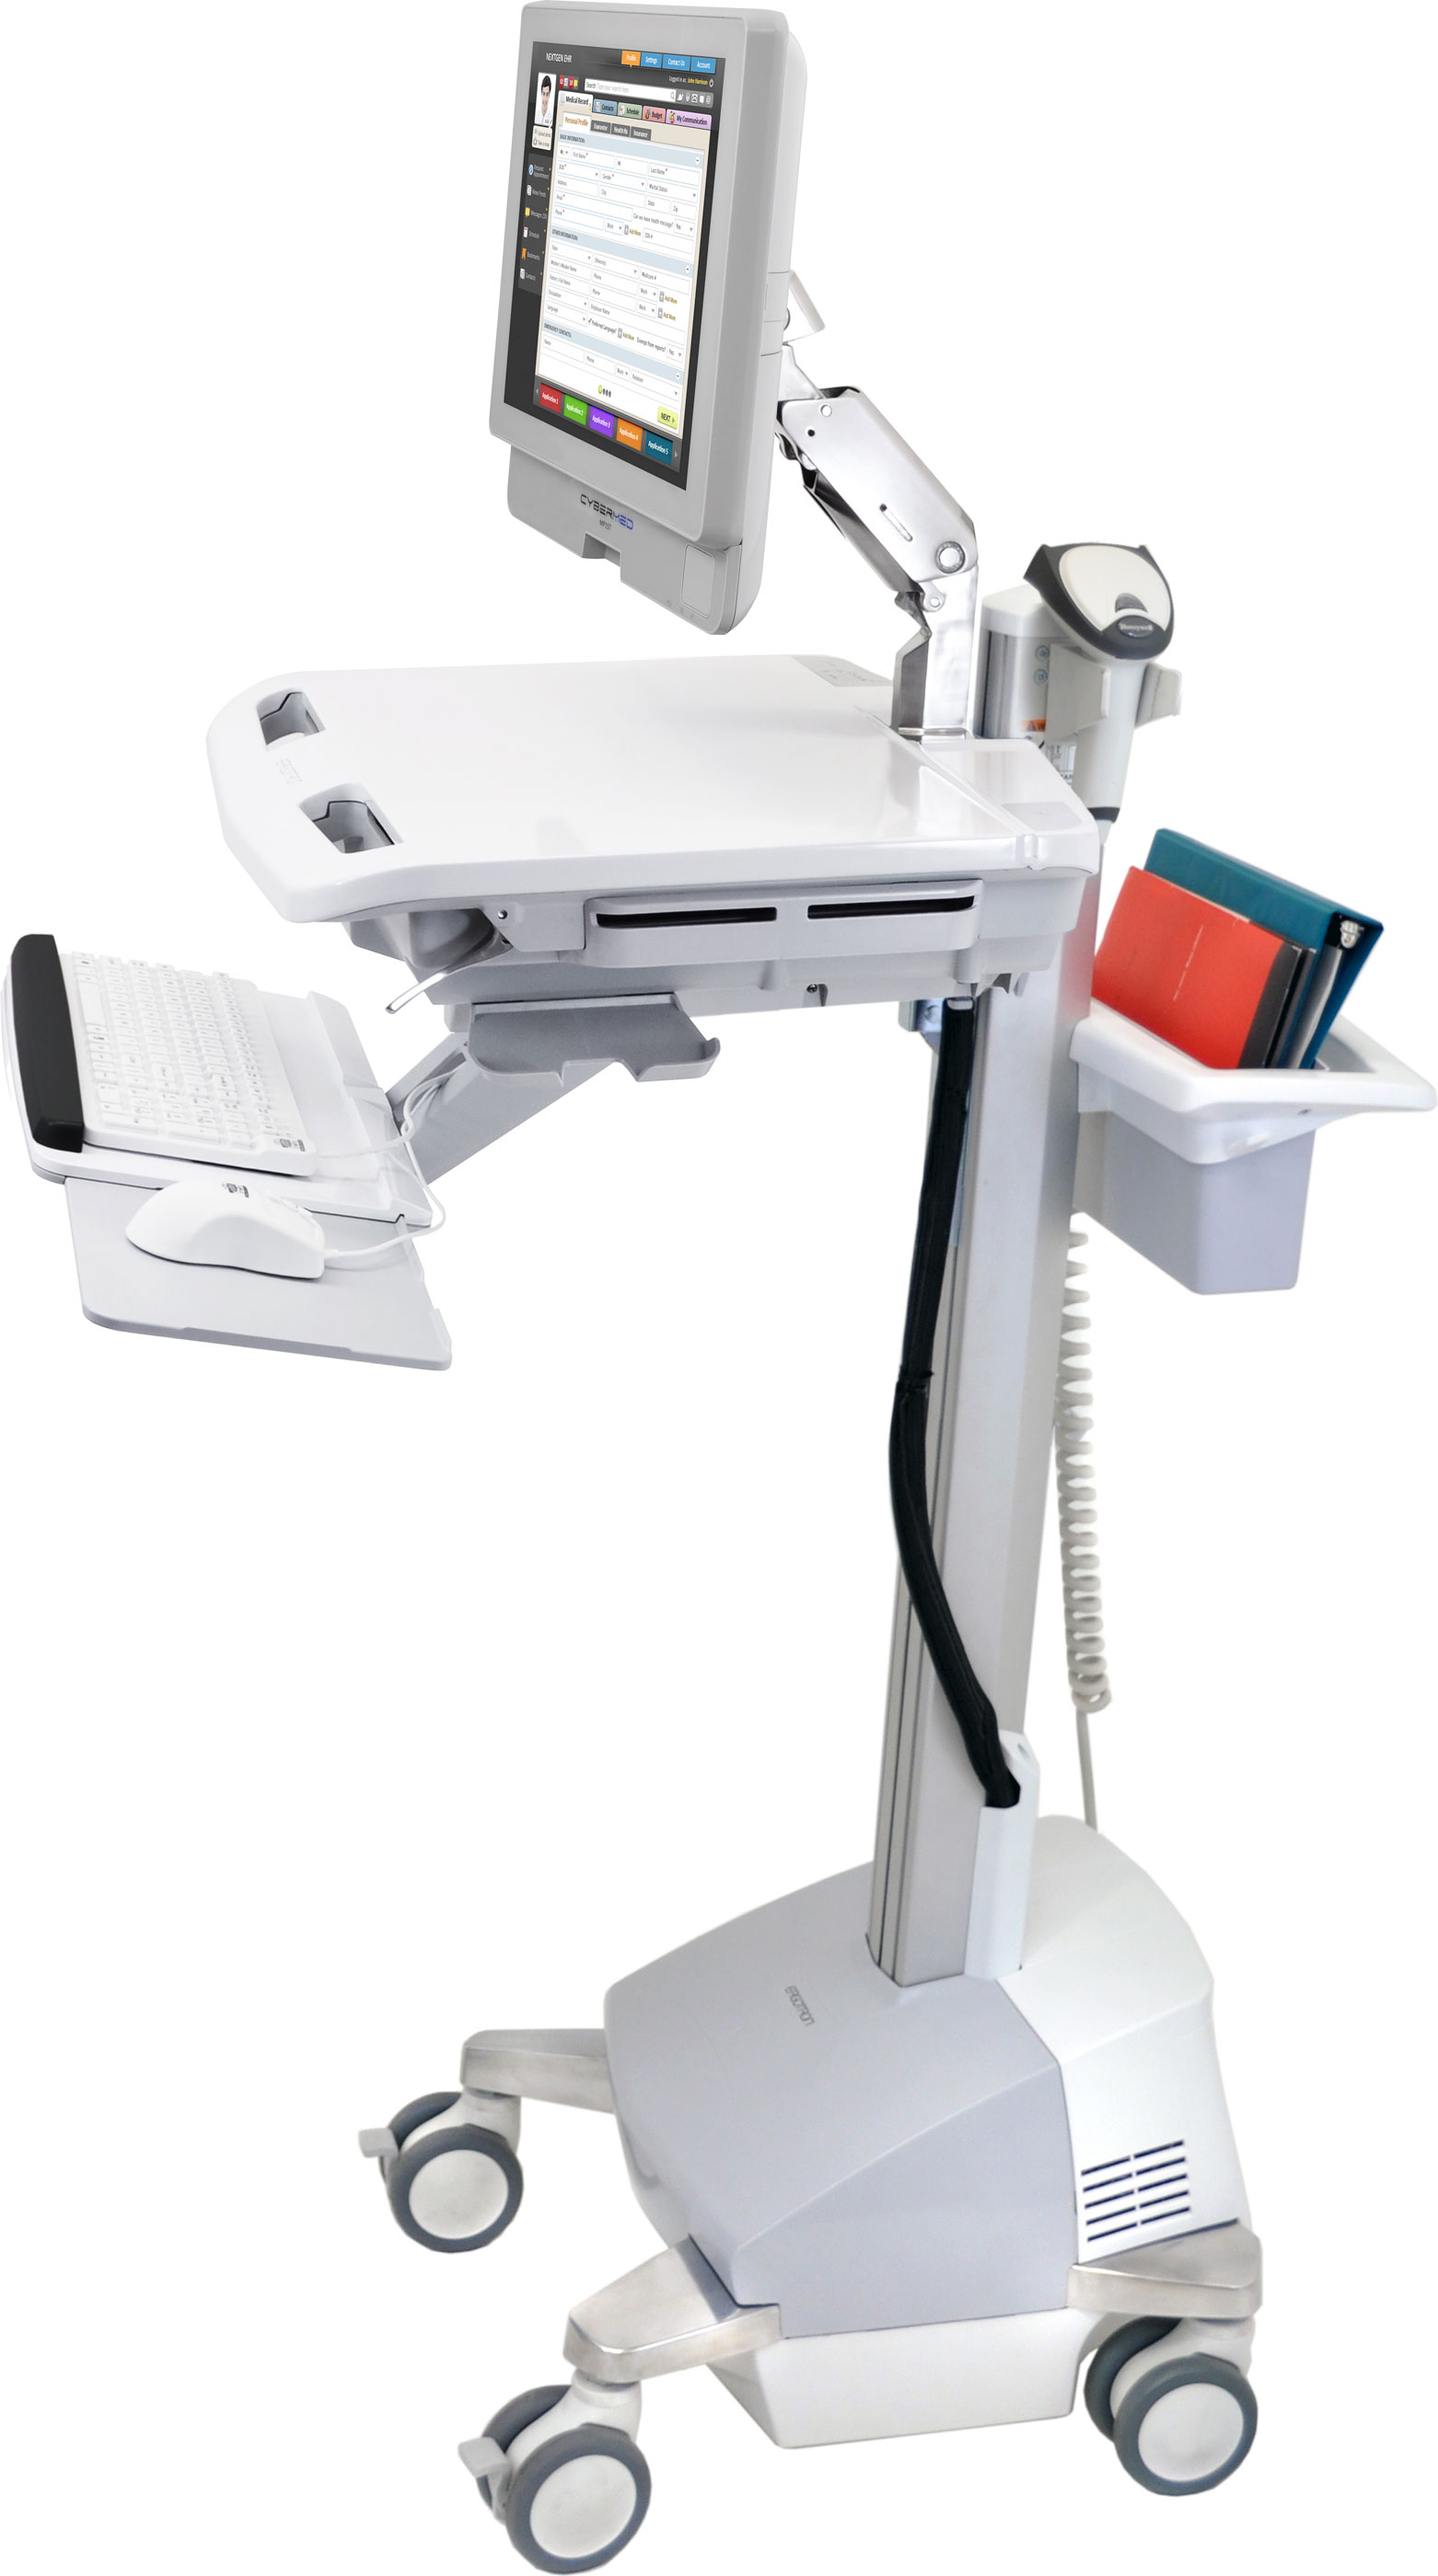 SV42-42221 Electronic Medical Record Cart with LCD Arm, Powered